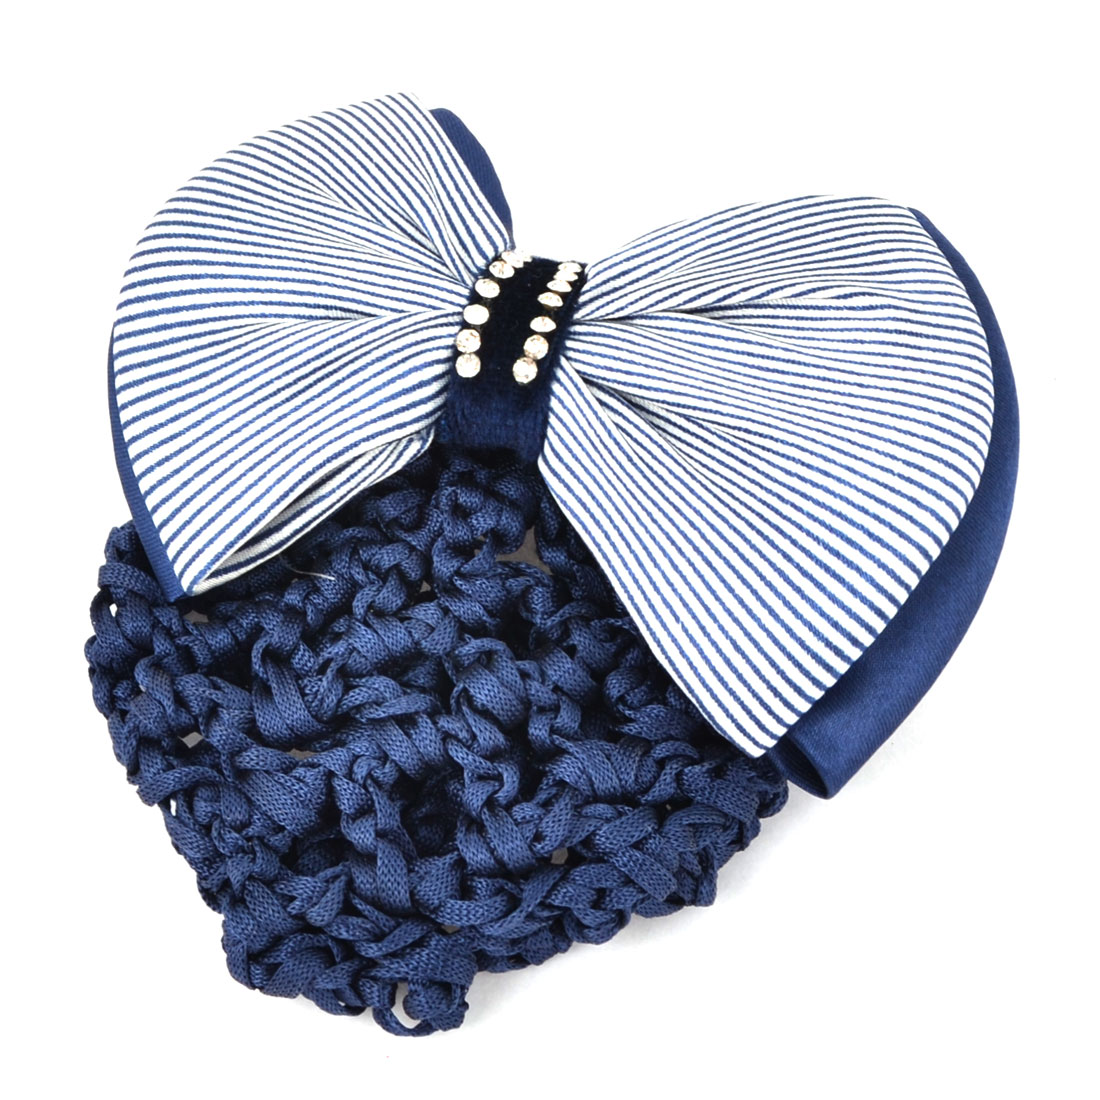 Sky Blue White Glitter Rhinestones Inlaid Striped Polyester Bowknot Decor Snood Net Barrette French Hair Clip Bun Cover for Ladies